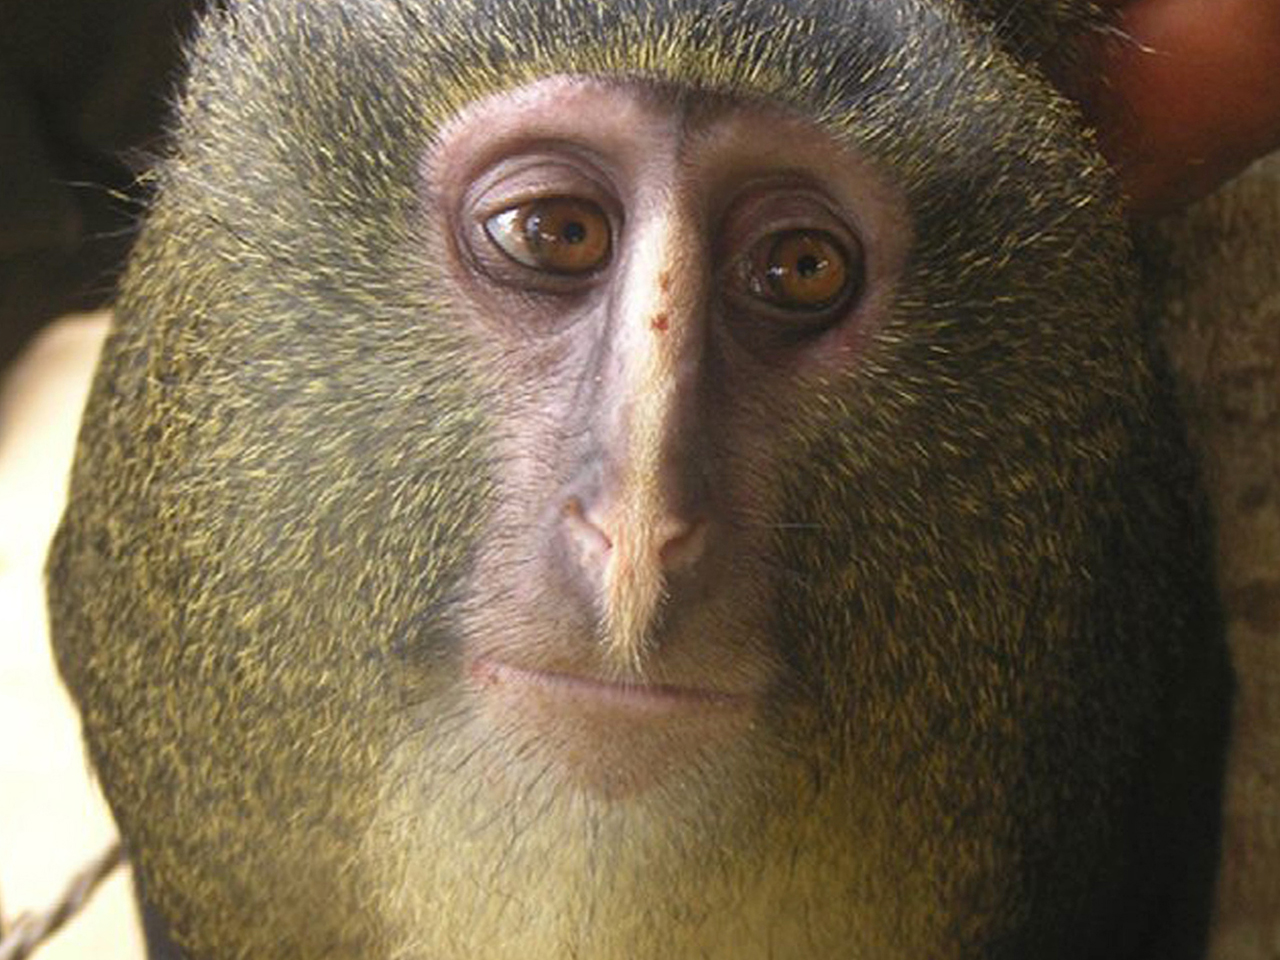 Researchers have identified a new species of African monkey, locally known as the Lesula, right, described in the Sep. 12, 2012, issue of the open acc...